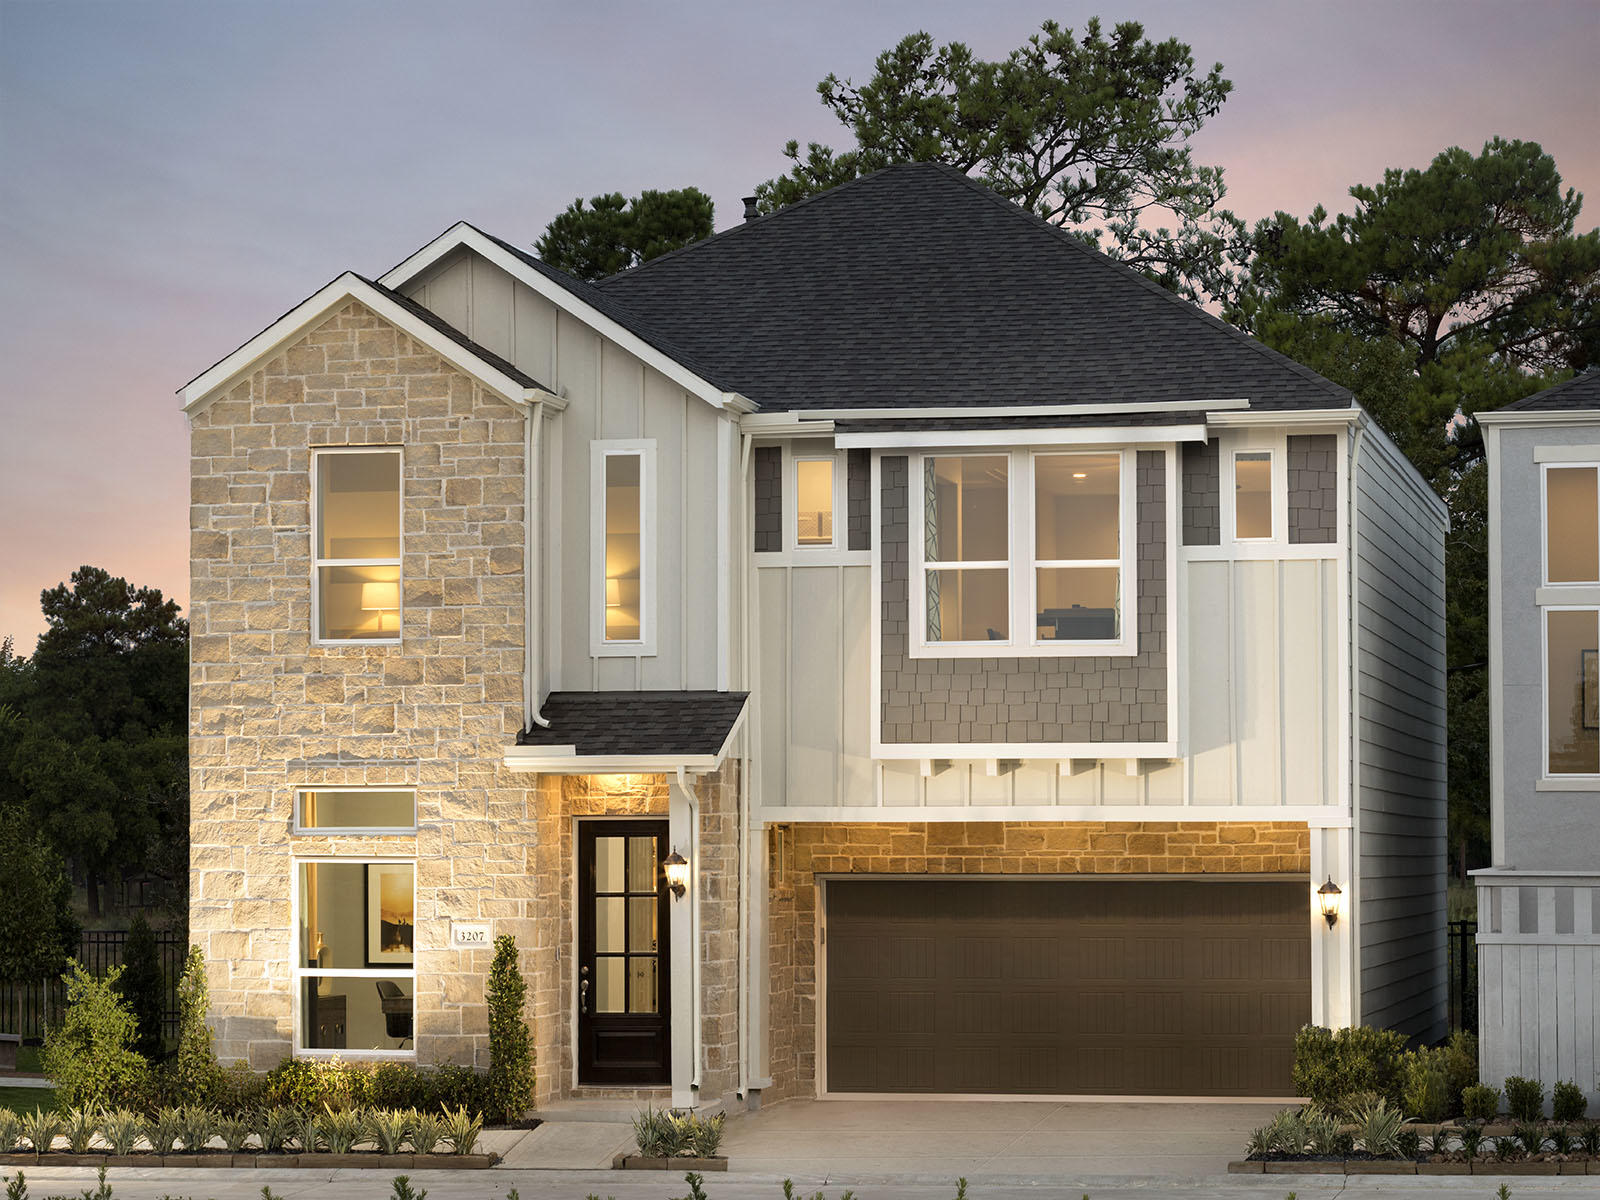 Spring Brook Village Patio Home Collection By Meritage Homes New